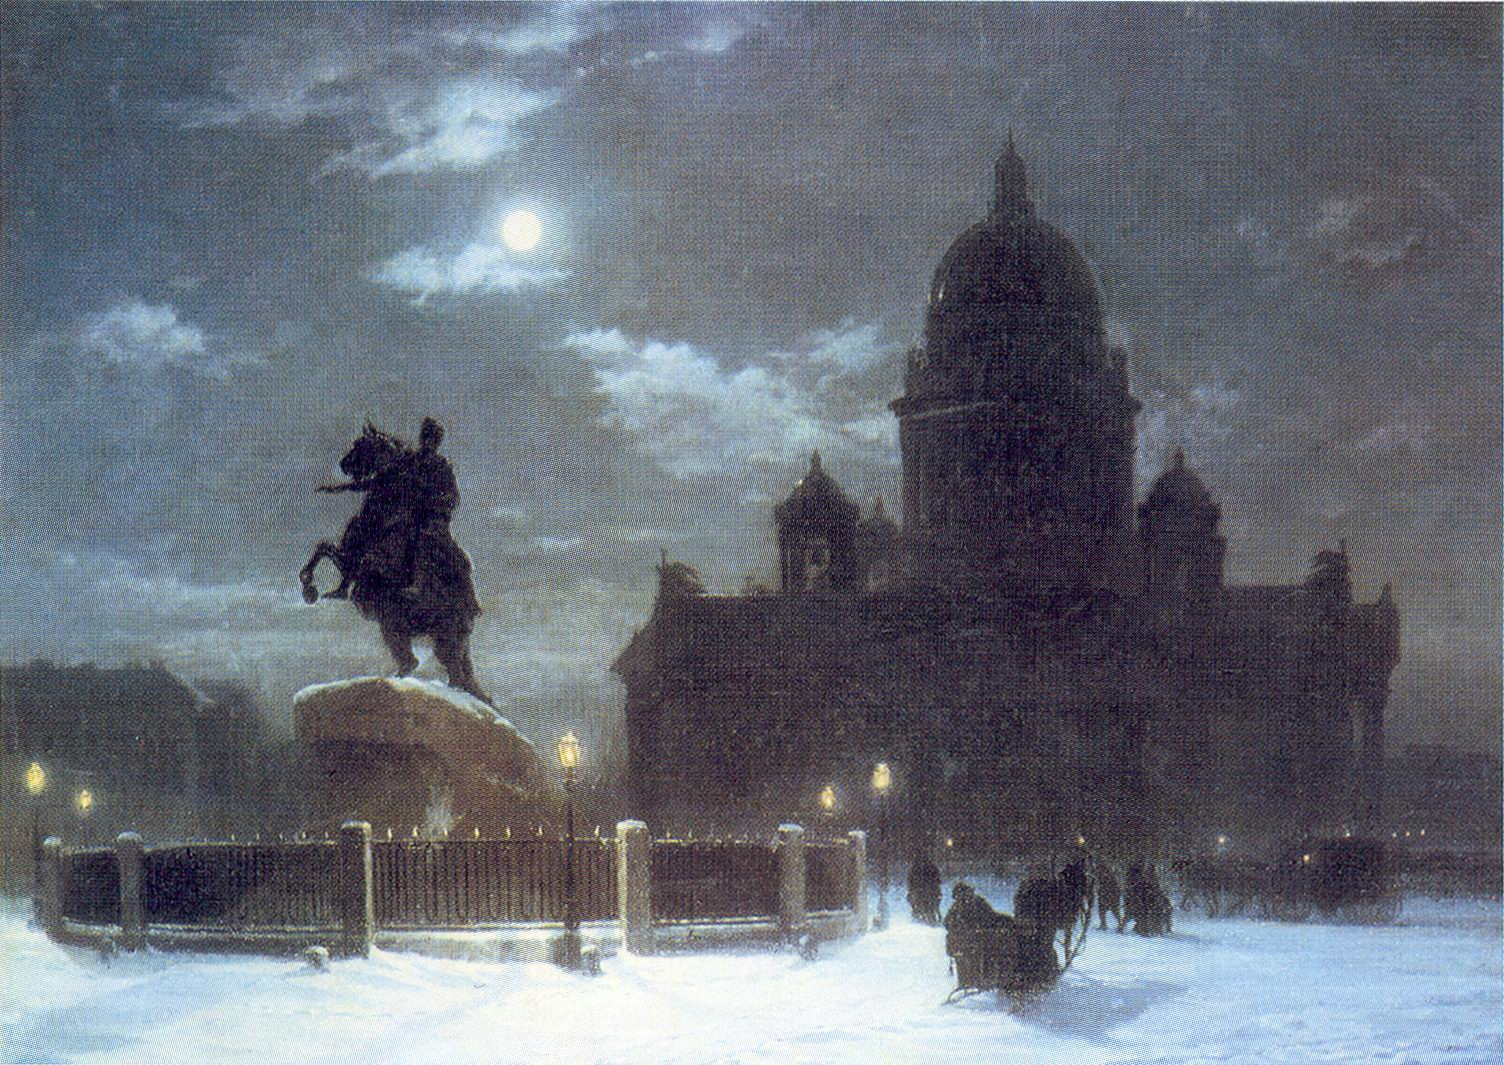 http://uploads3.wikipaintings.org/images/arkhip-kuindzhi/view-of-the-isaac-cathedral-at-moonlight-night-1869-1.jpg